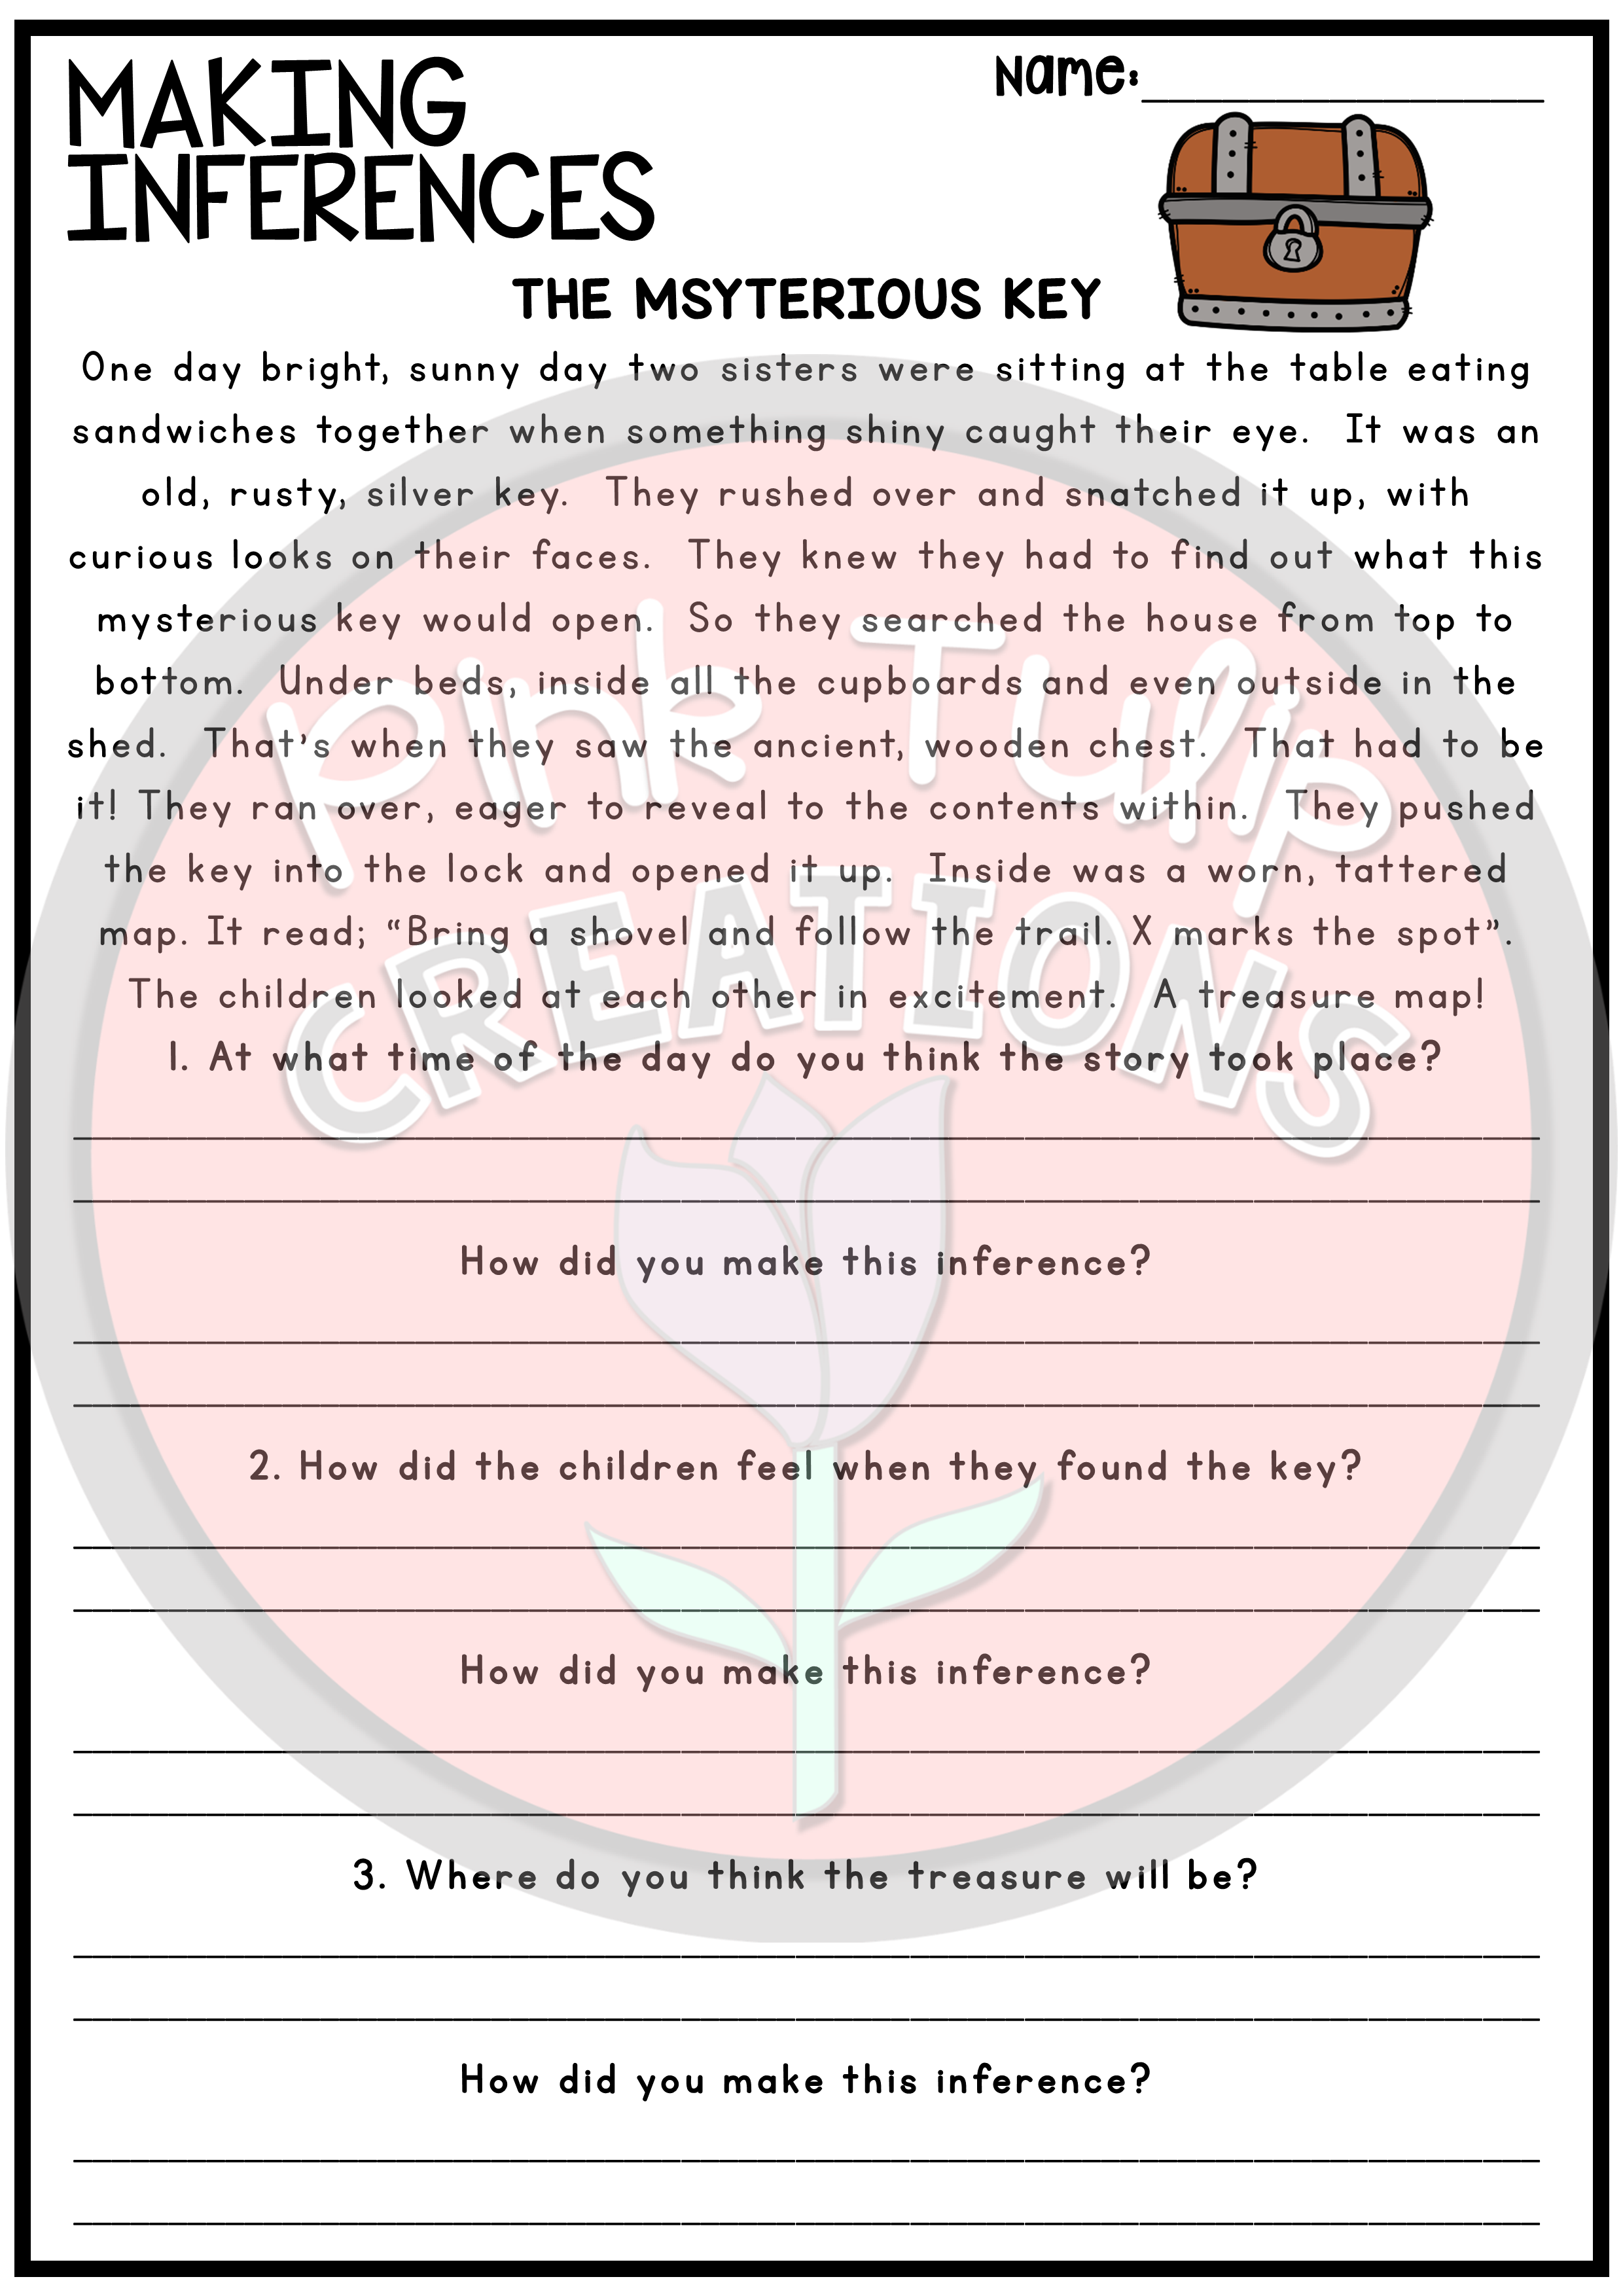 Making Inferences and Drawing Conclusions - Reading Worksheet Pack    Reading comprehension worksheets [ 3508 x 2480 Pixel ]